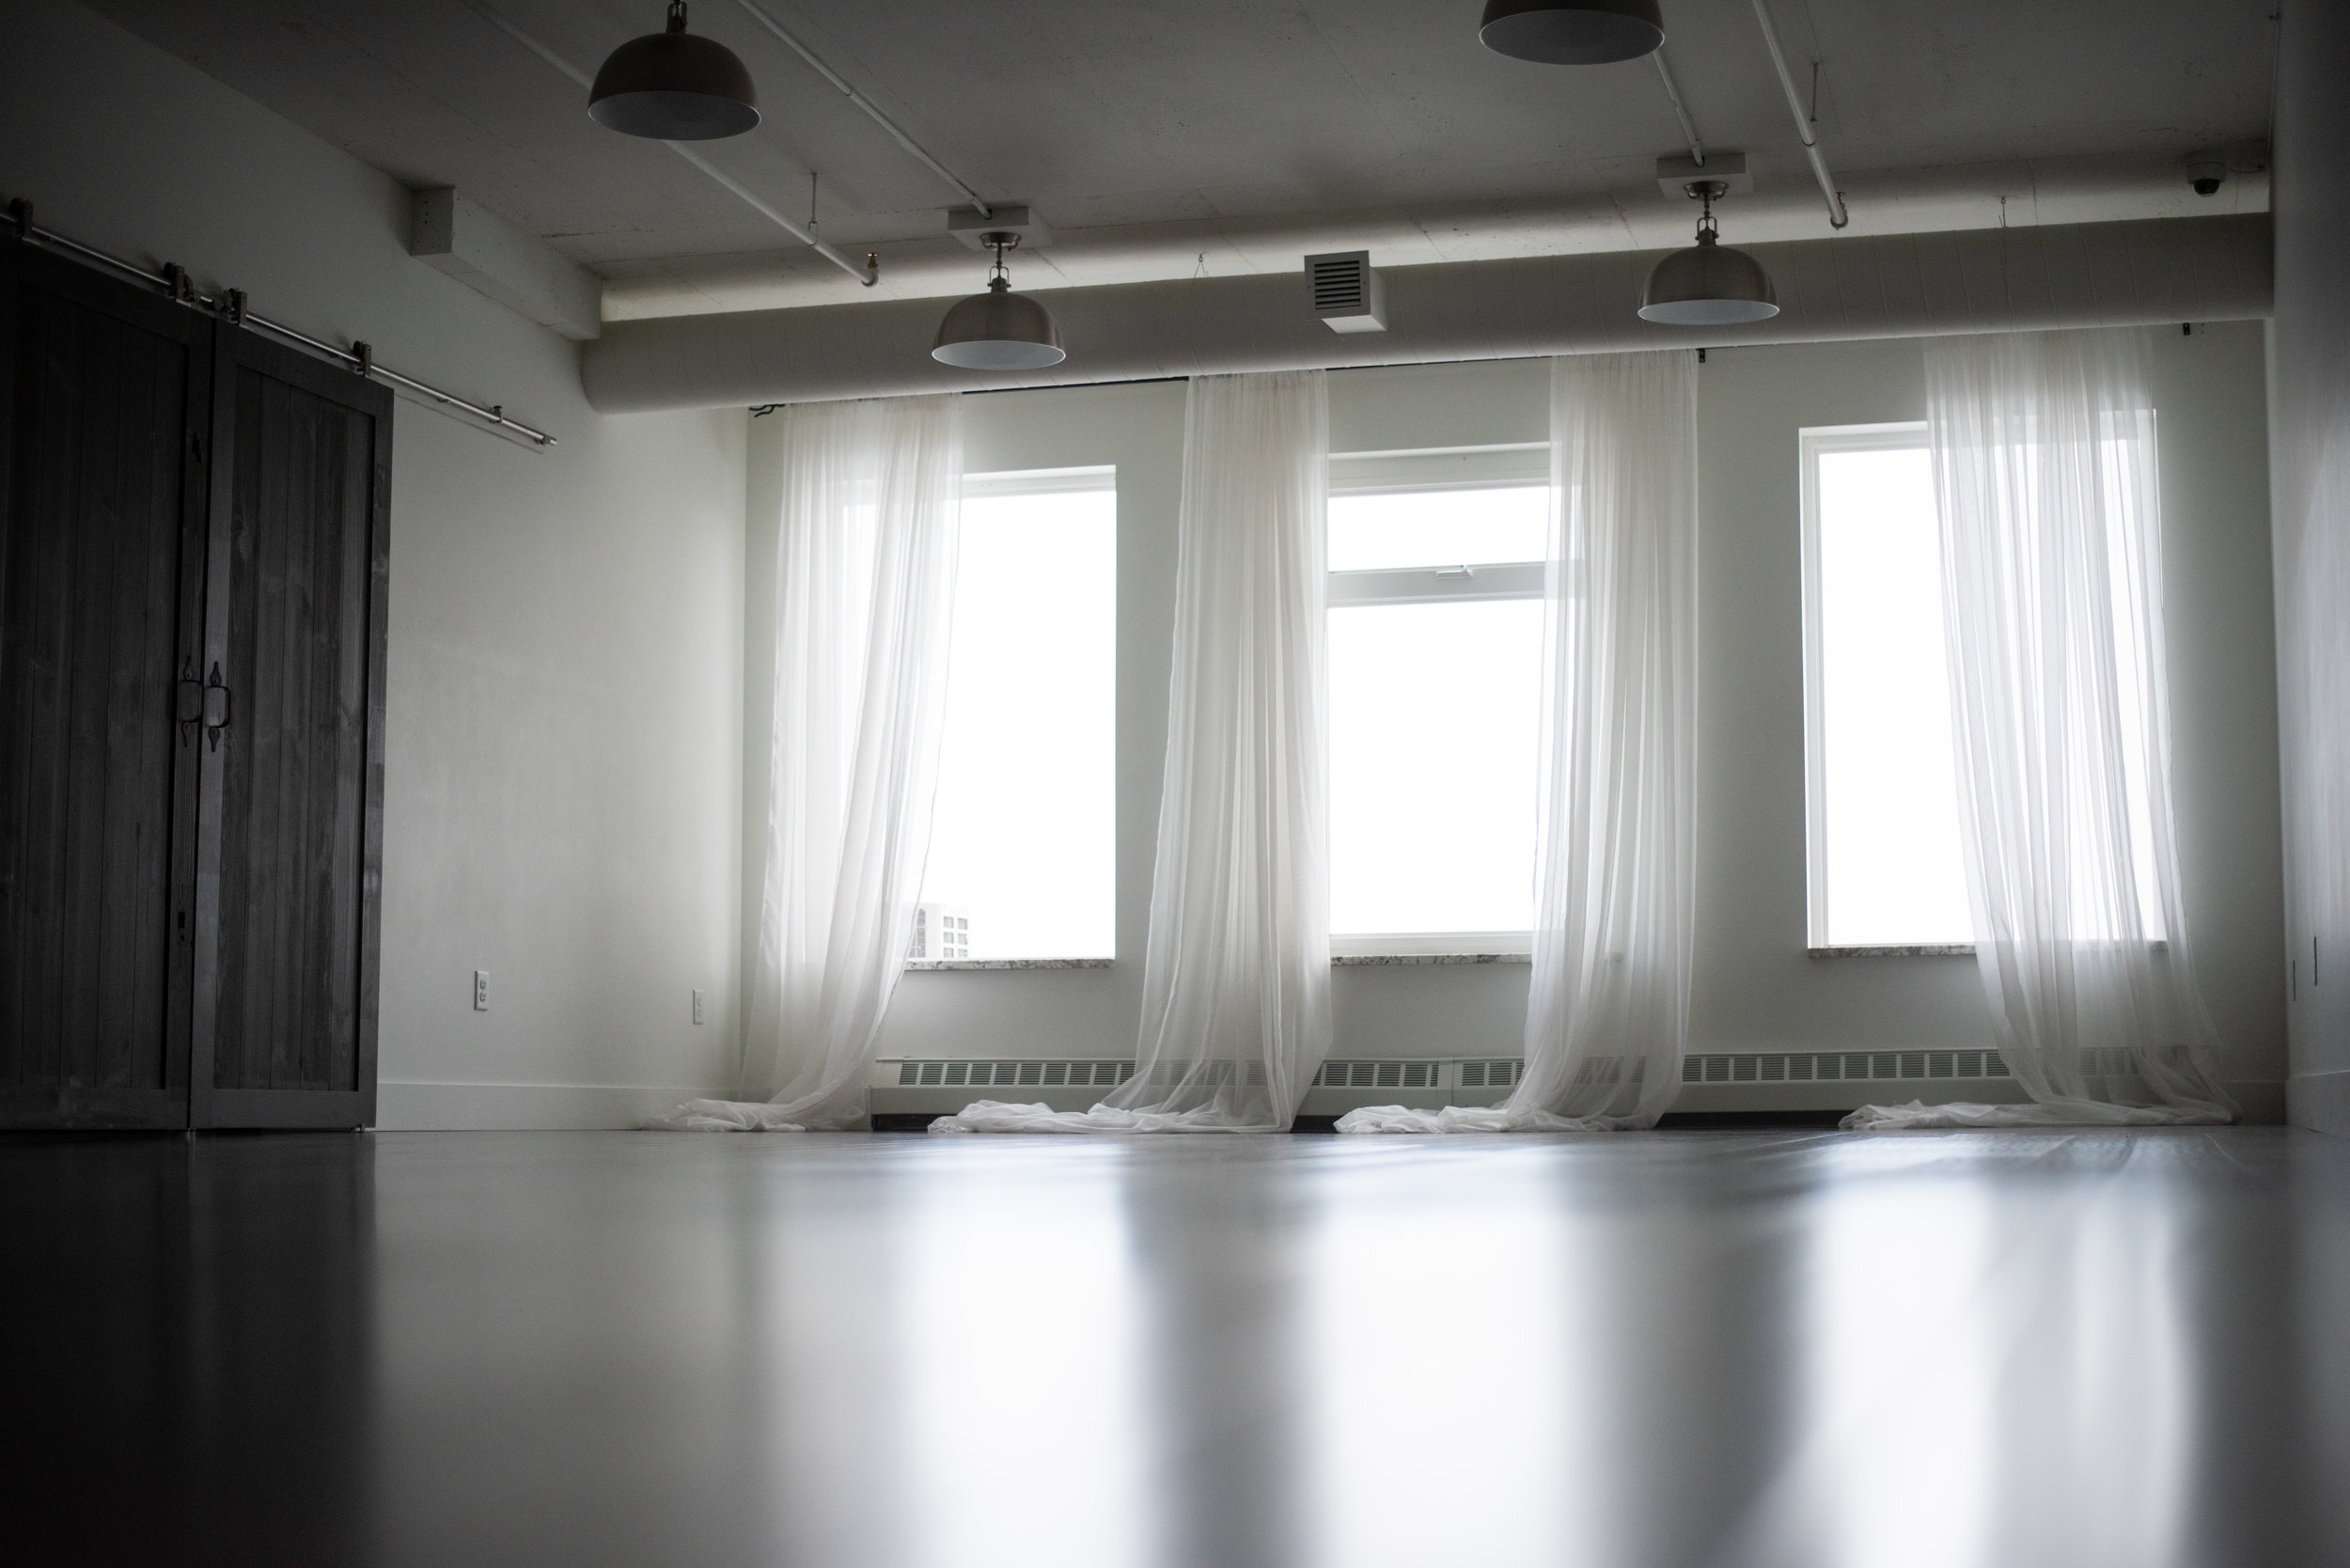 The studio is available for rent seven days a week from 8 am to 10 pm